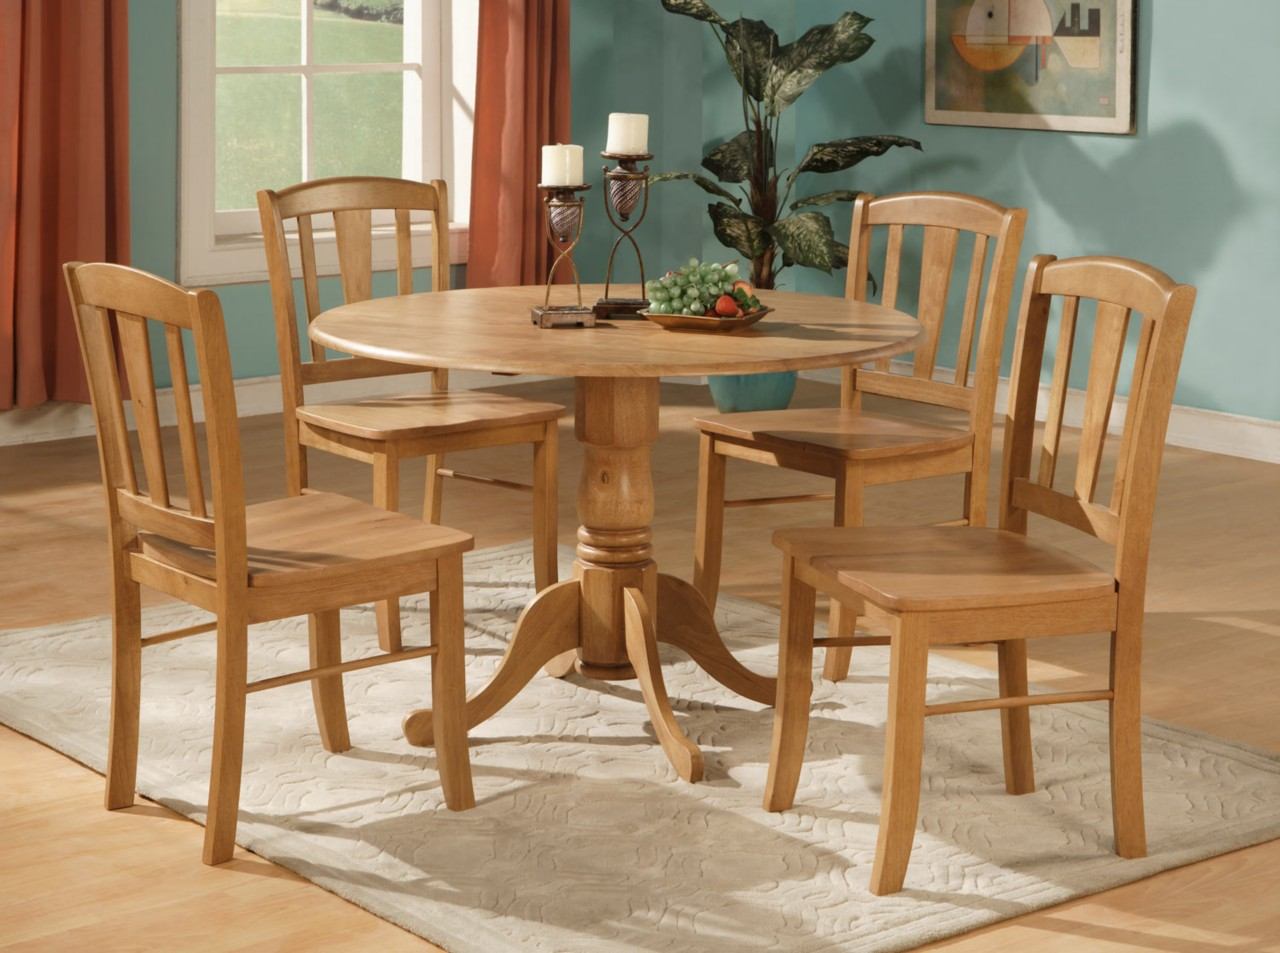 5pc round dinette kitchen dining set table and 4 chairs ebay for Dinette sets